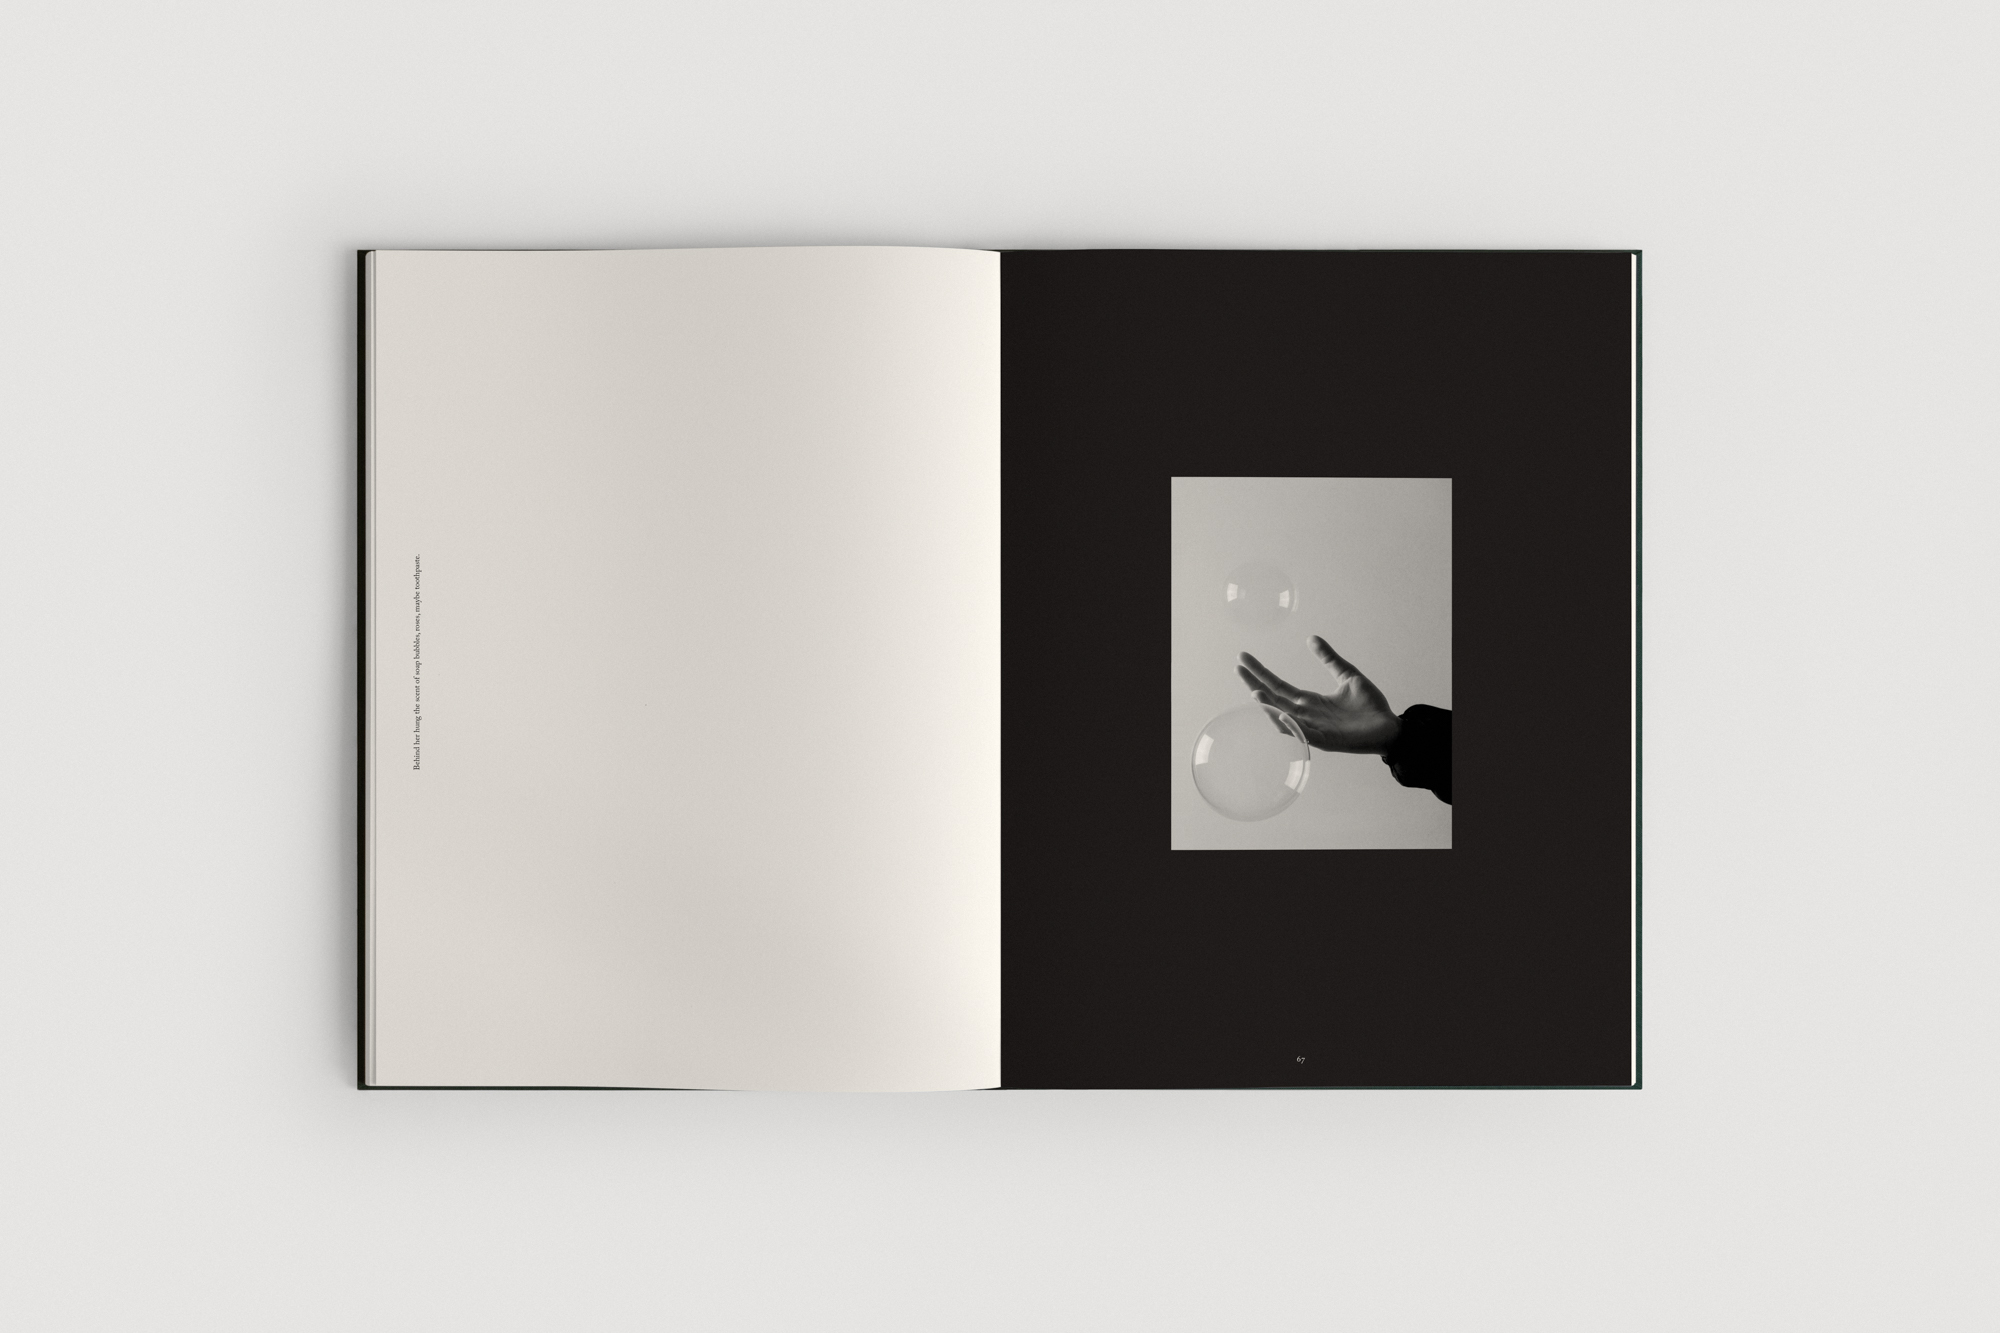 Jonas-Bjerre-Poulsen-The-Reinvention-of-Forms-Book-Packshots-Web-11